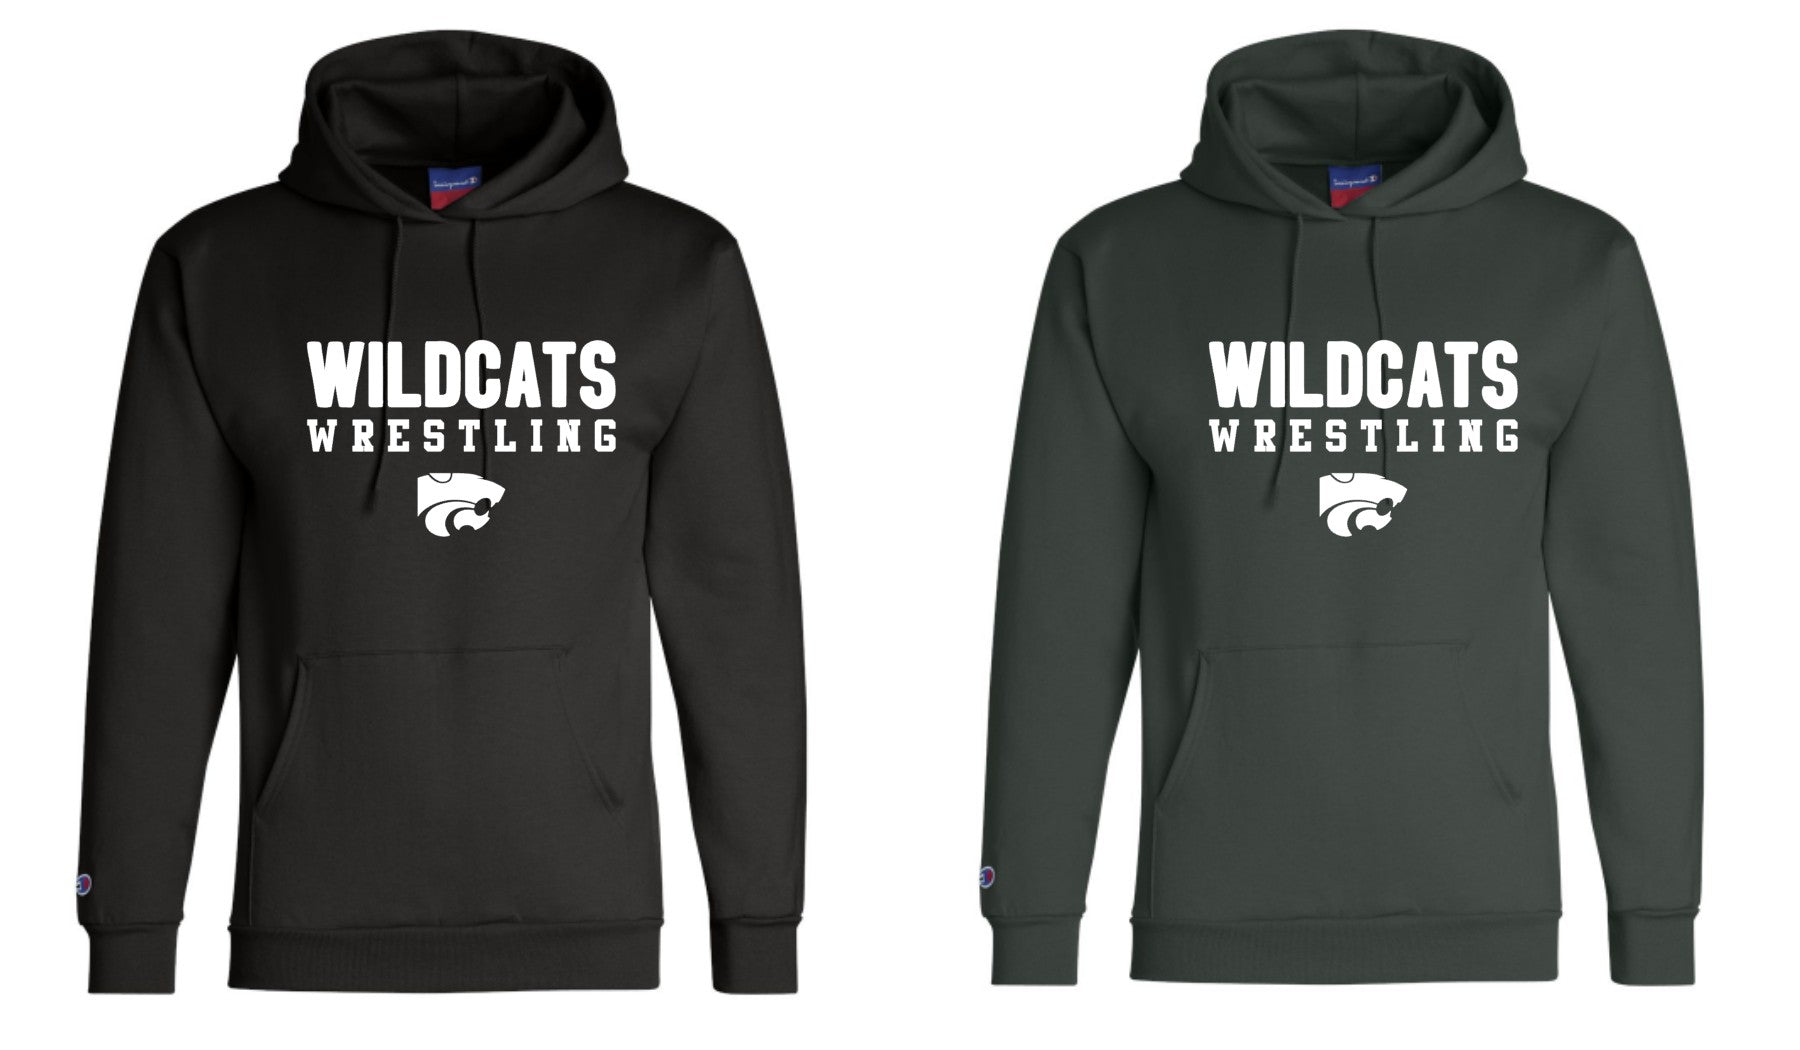 Champion Wildcats Wrestling C Hoodies